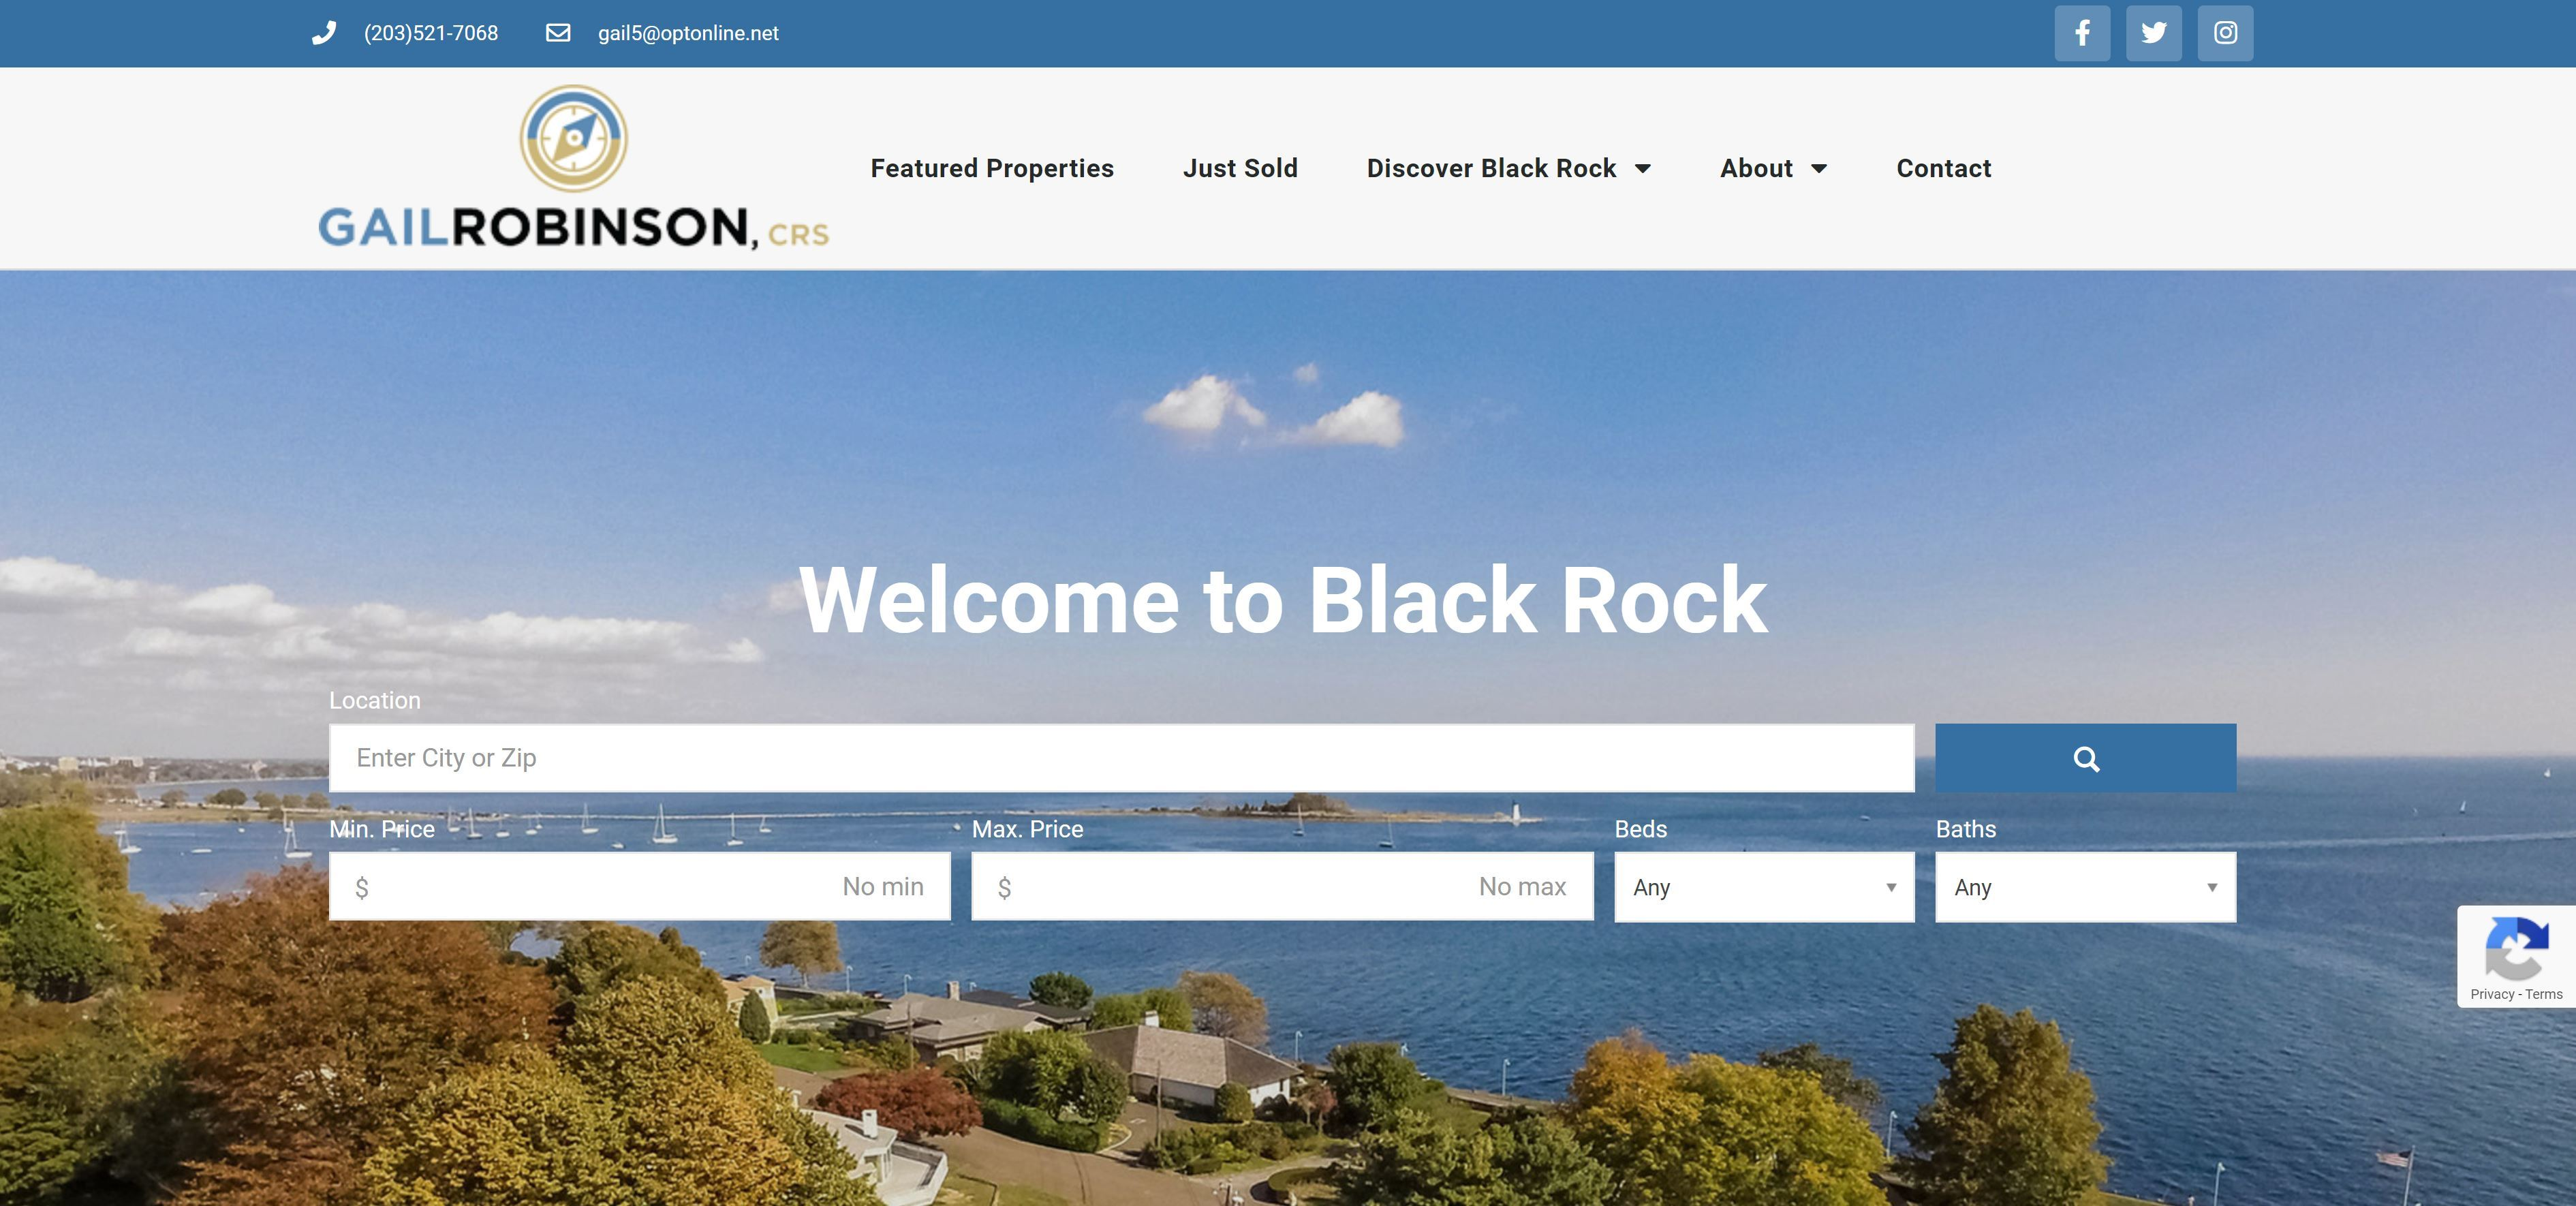 Black Rock Homes for Sale Website